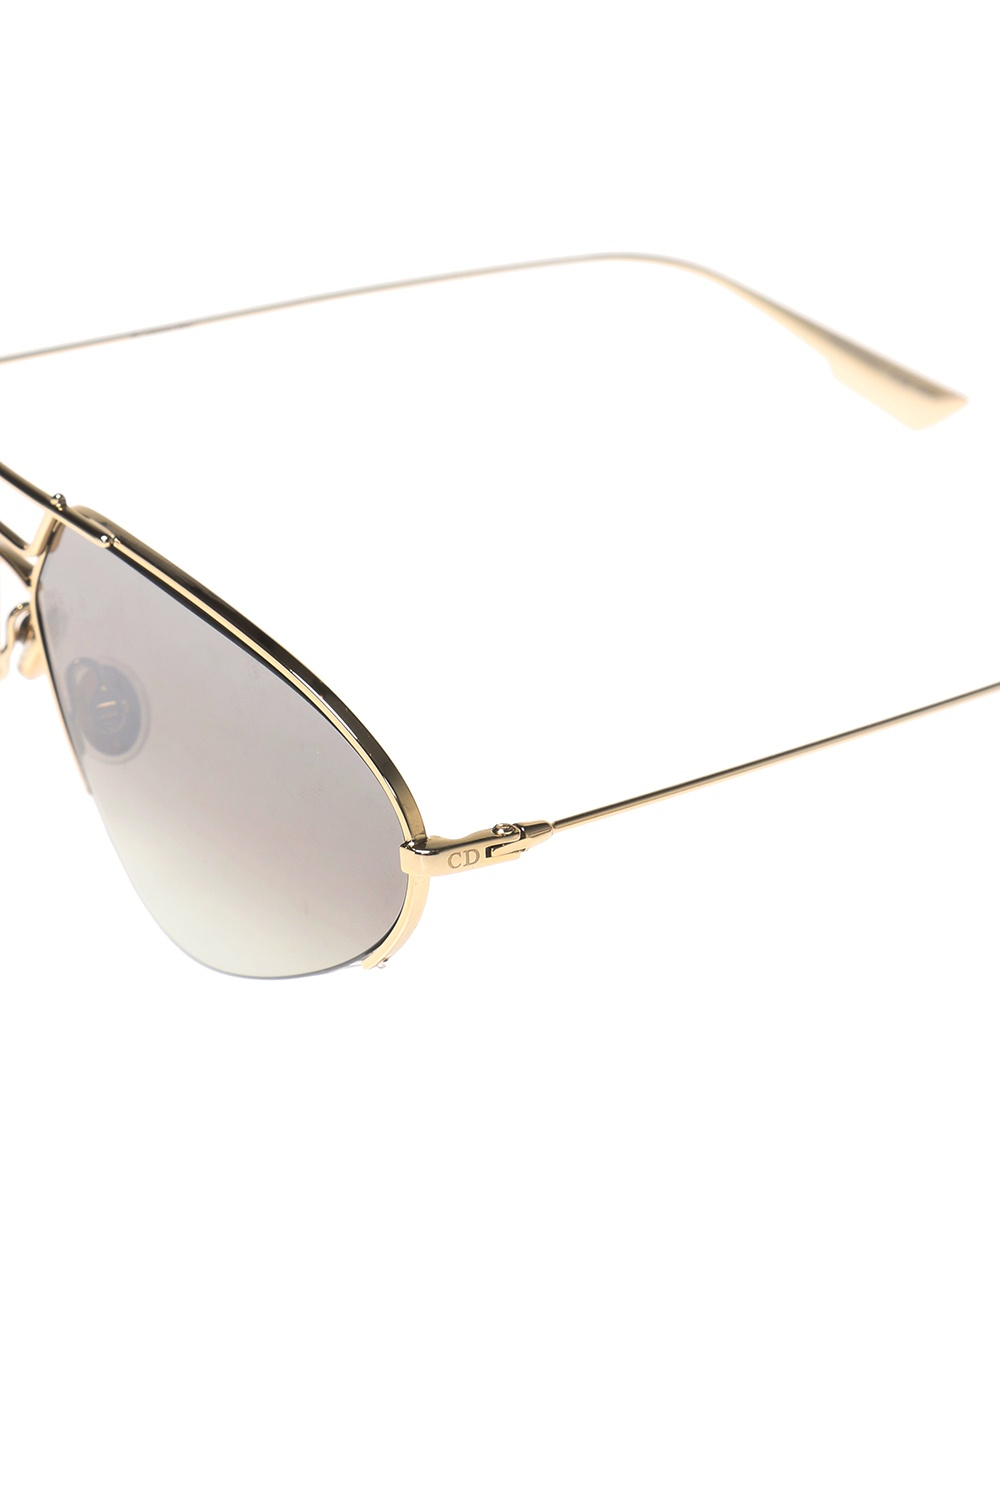 Dior 'Stellaire 5' sunglasses